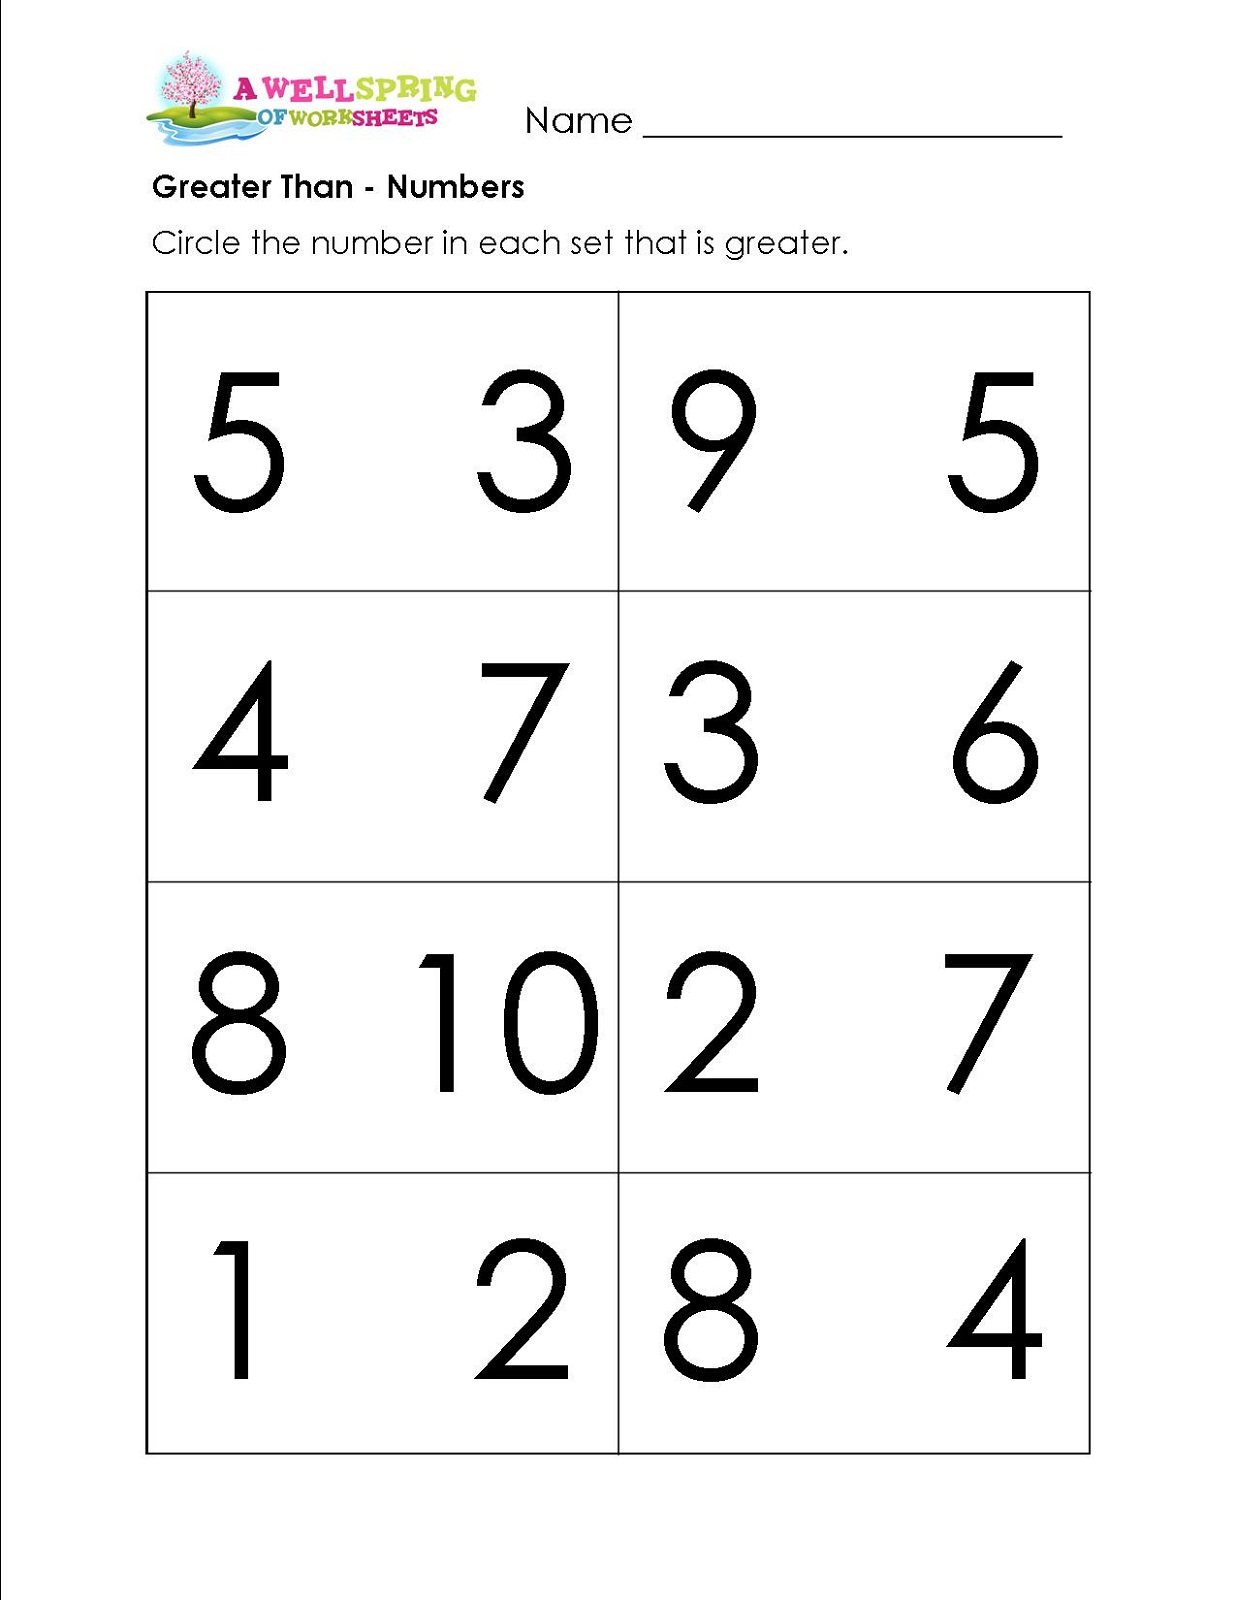 Worksheets Worksheets For Kindergarden math worksheets kinder 3738415 aks flight info